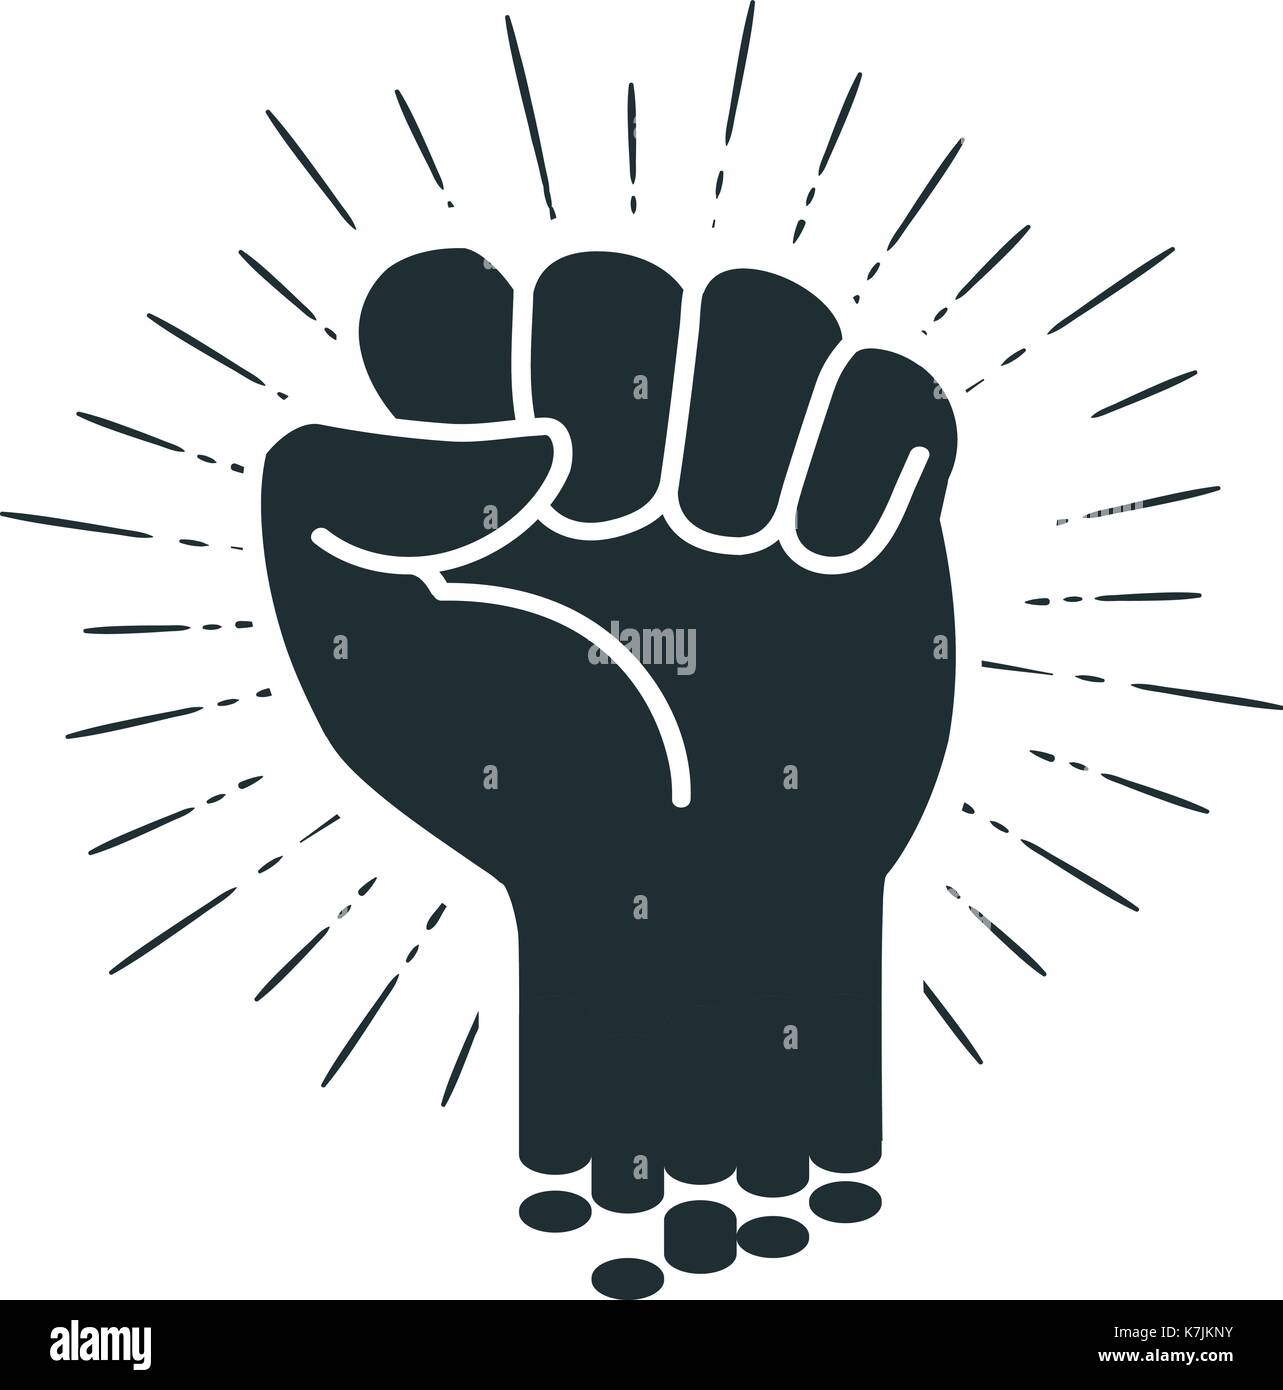 Male clenched fist, logo or label. Power, force, strength icon. Vector illustration - Stock Vector